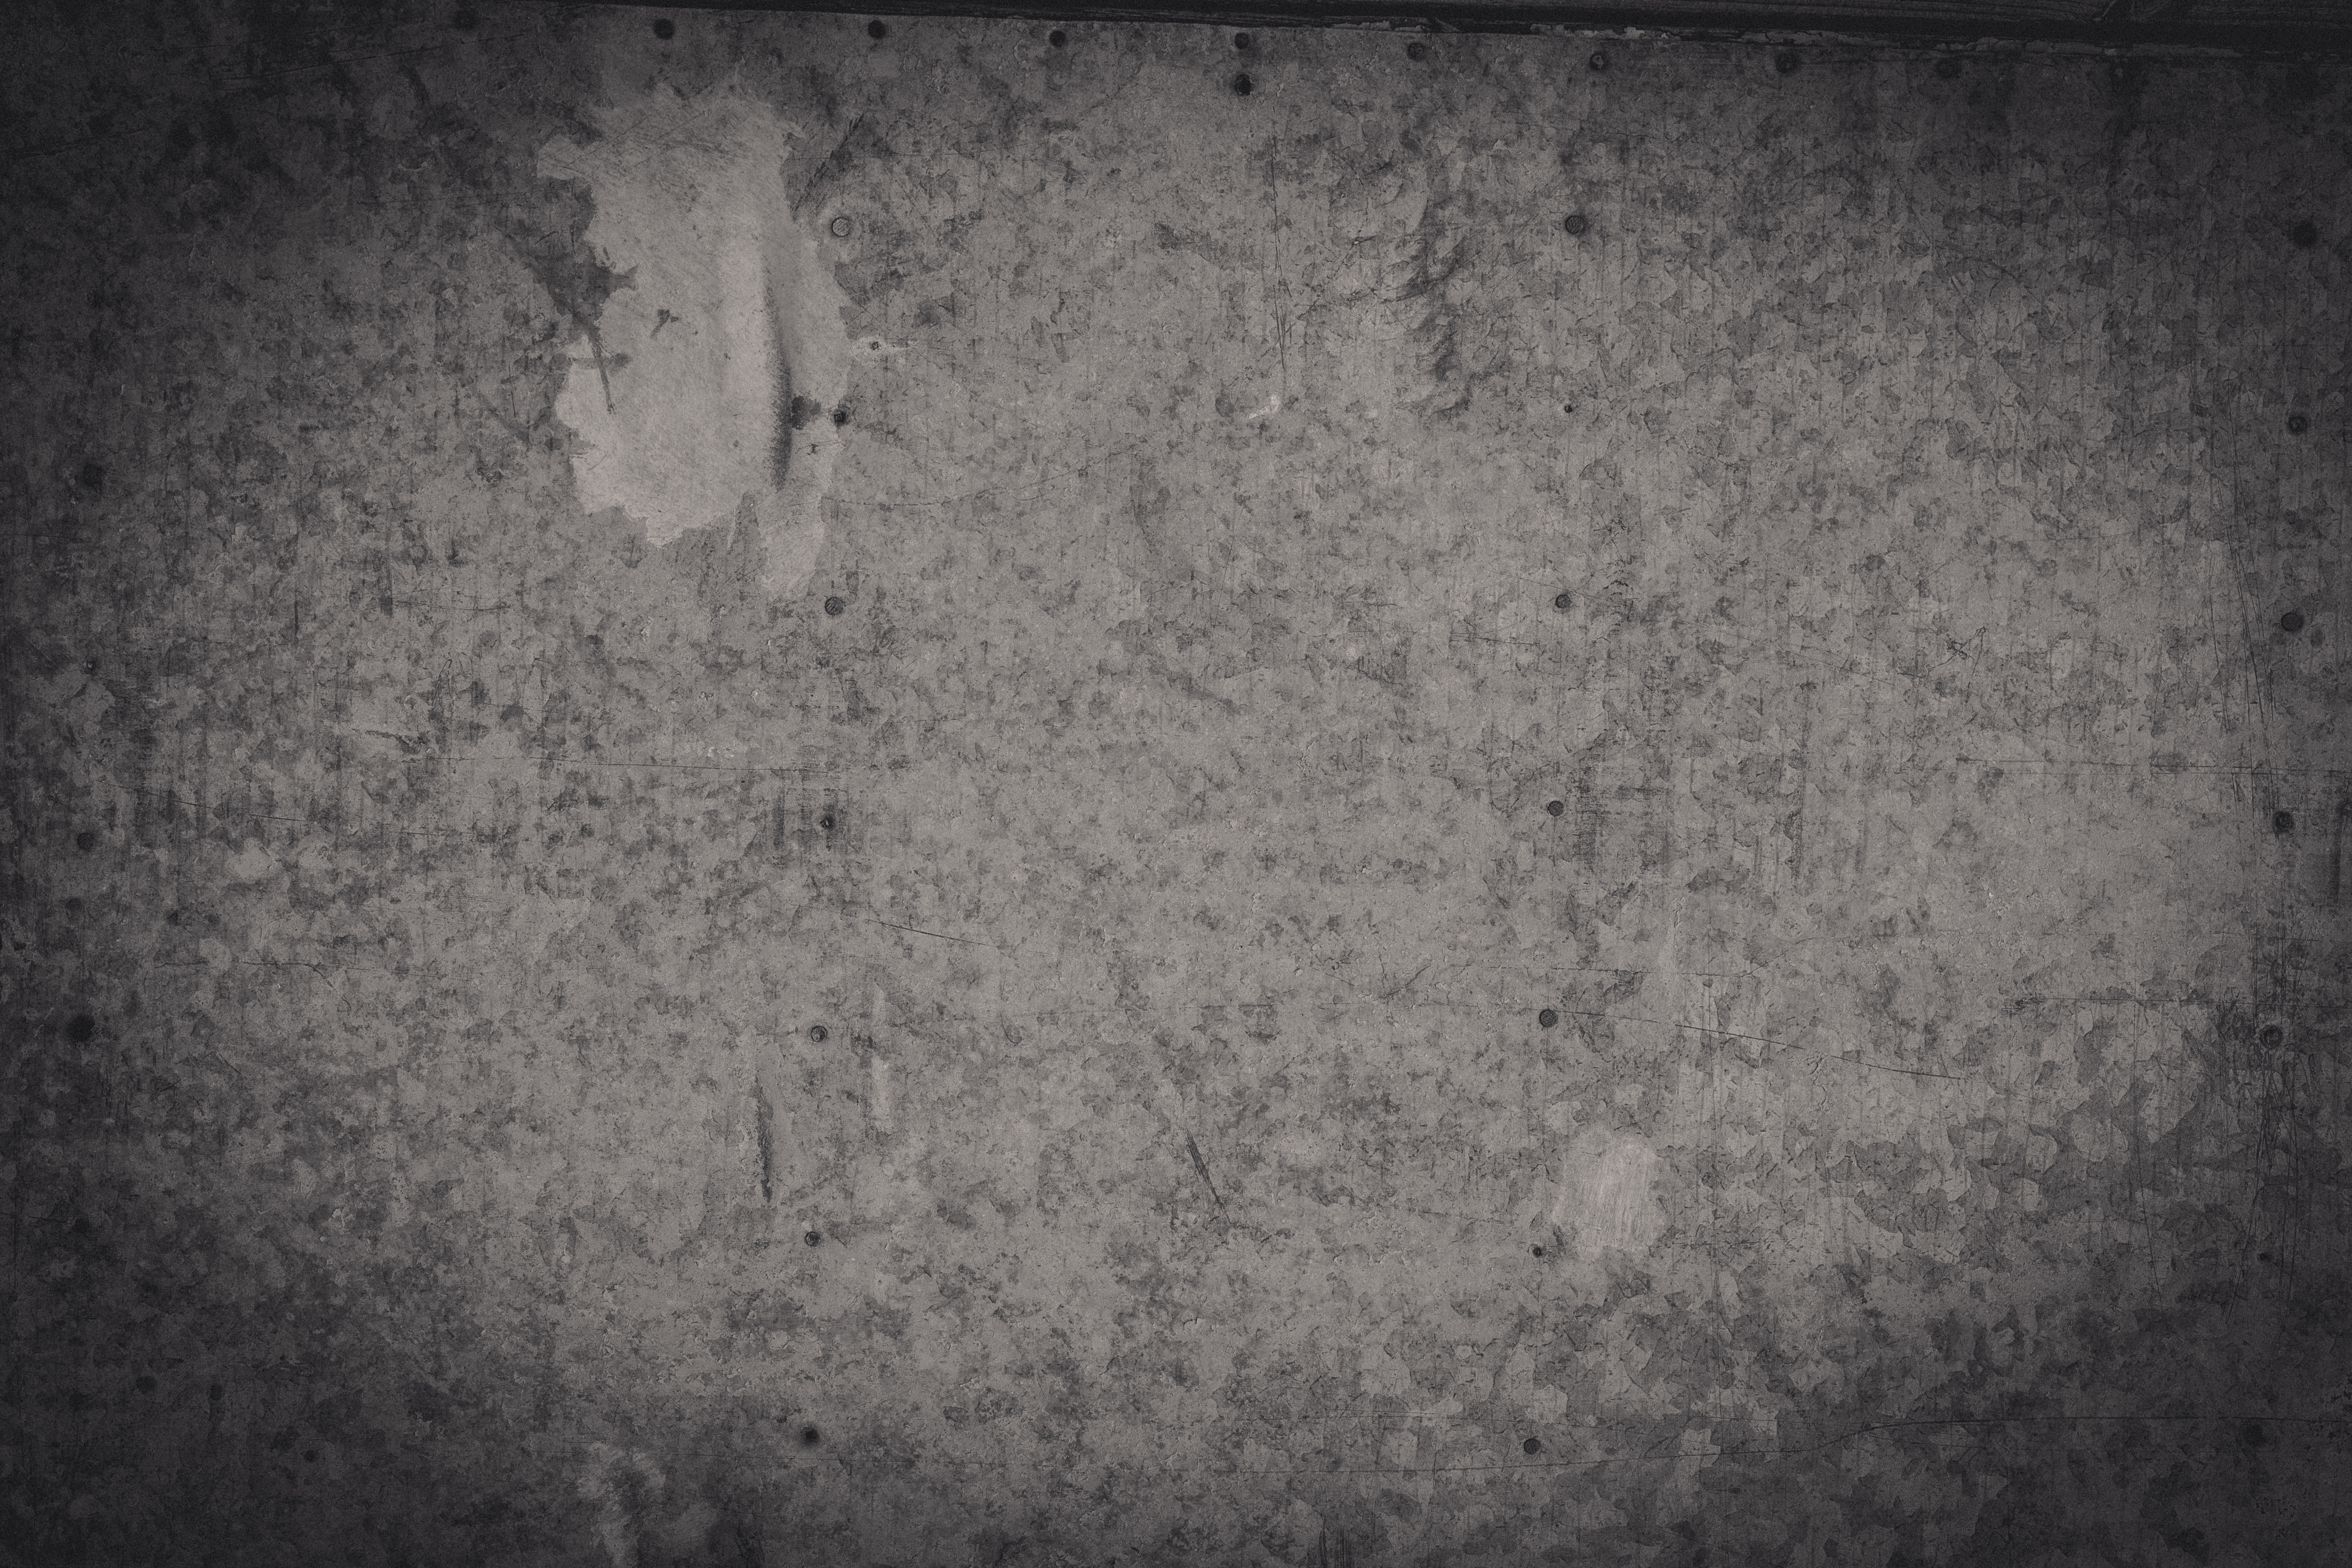 Black & White Metal Texture, Texture, Wall, White, Surface, HQ Photo